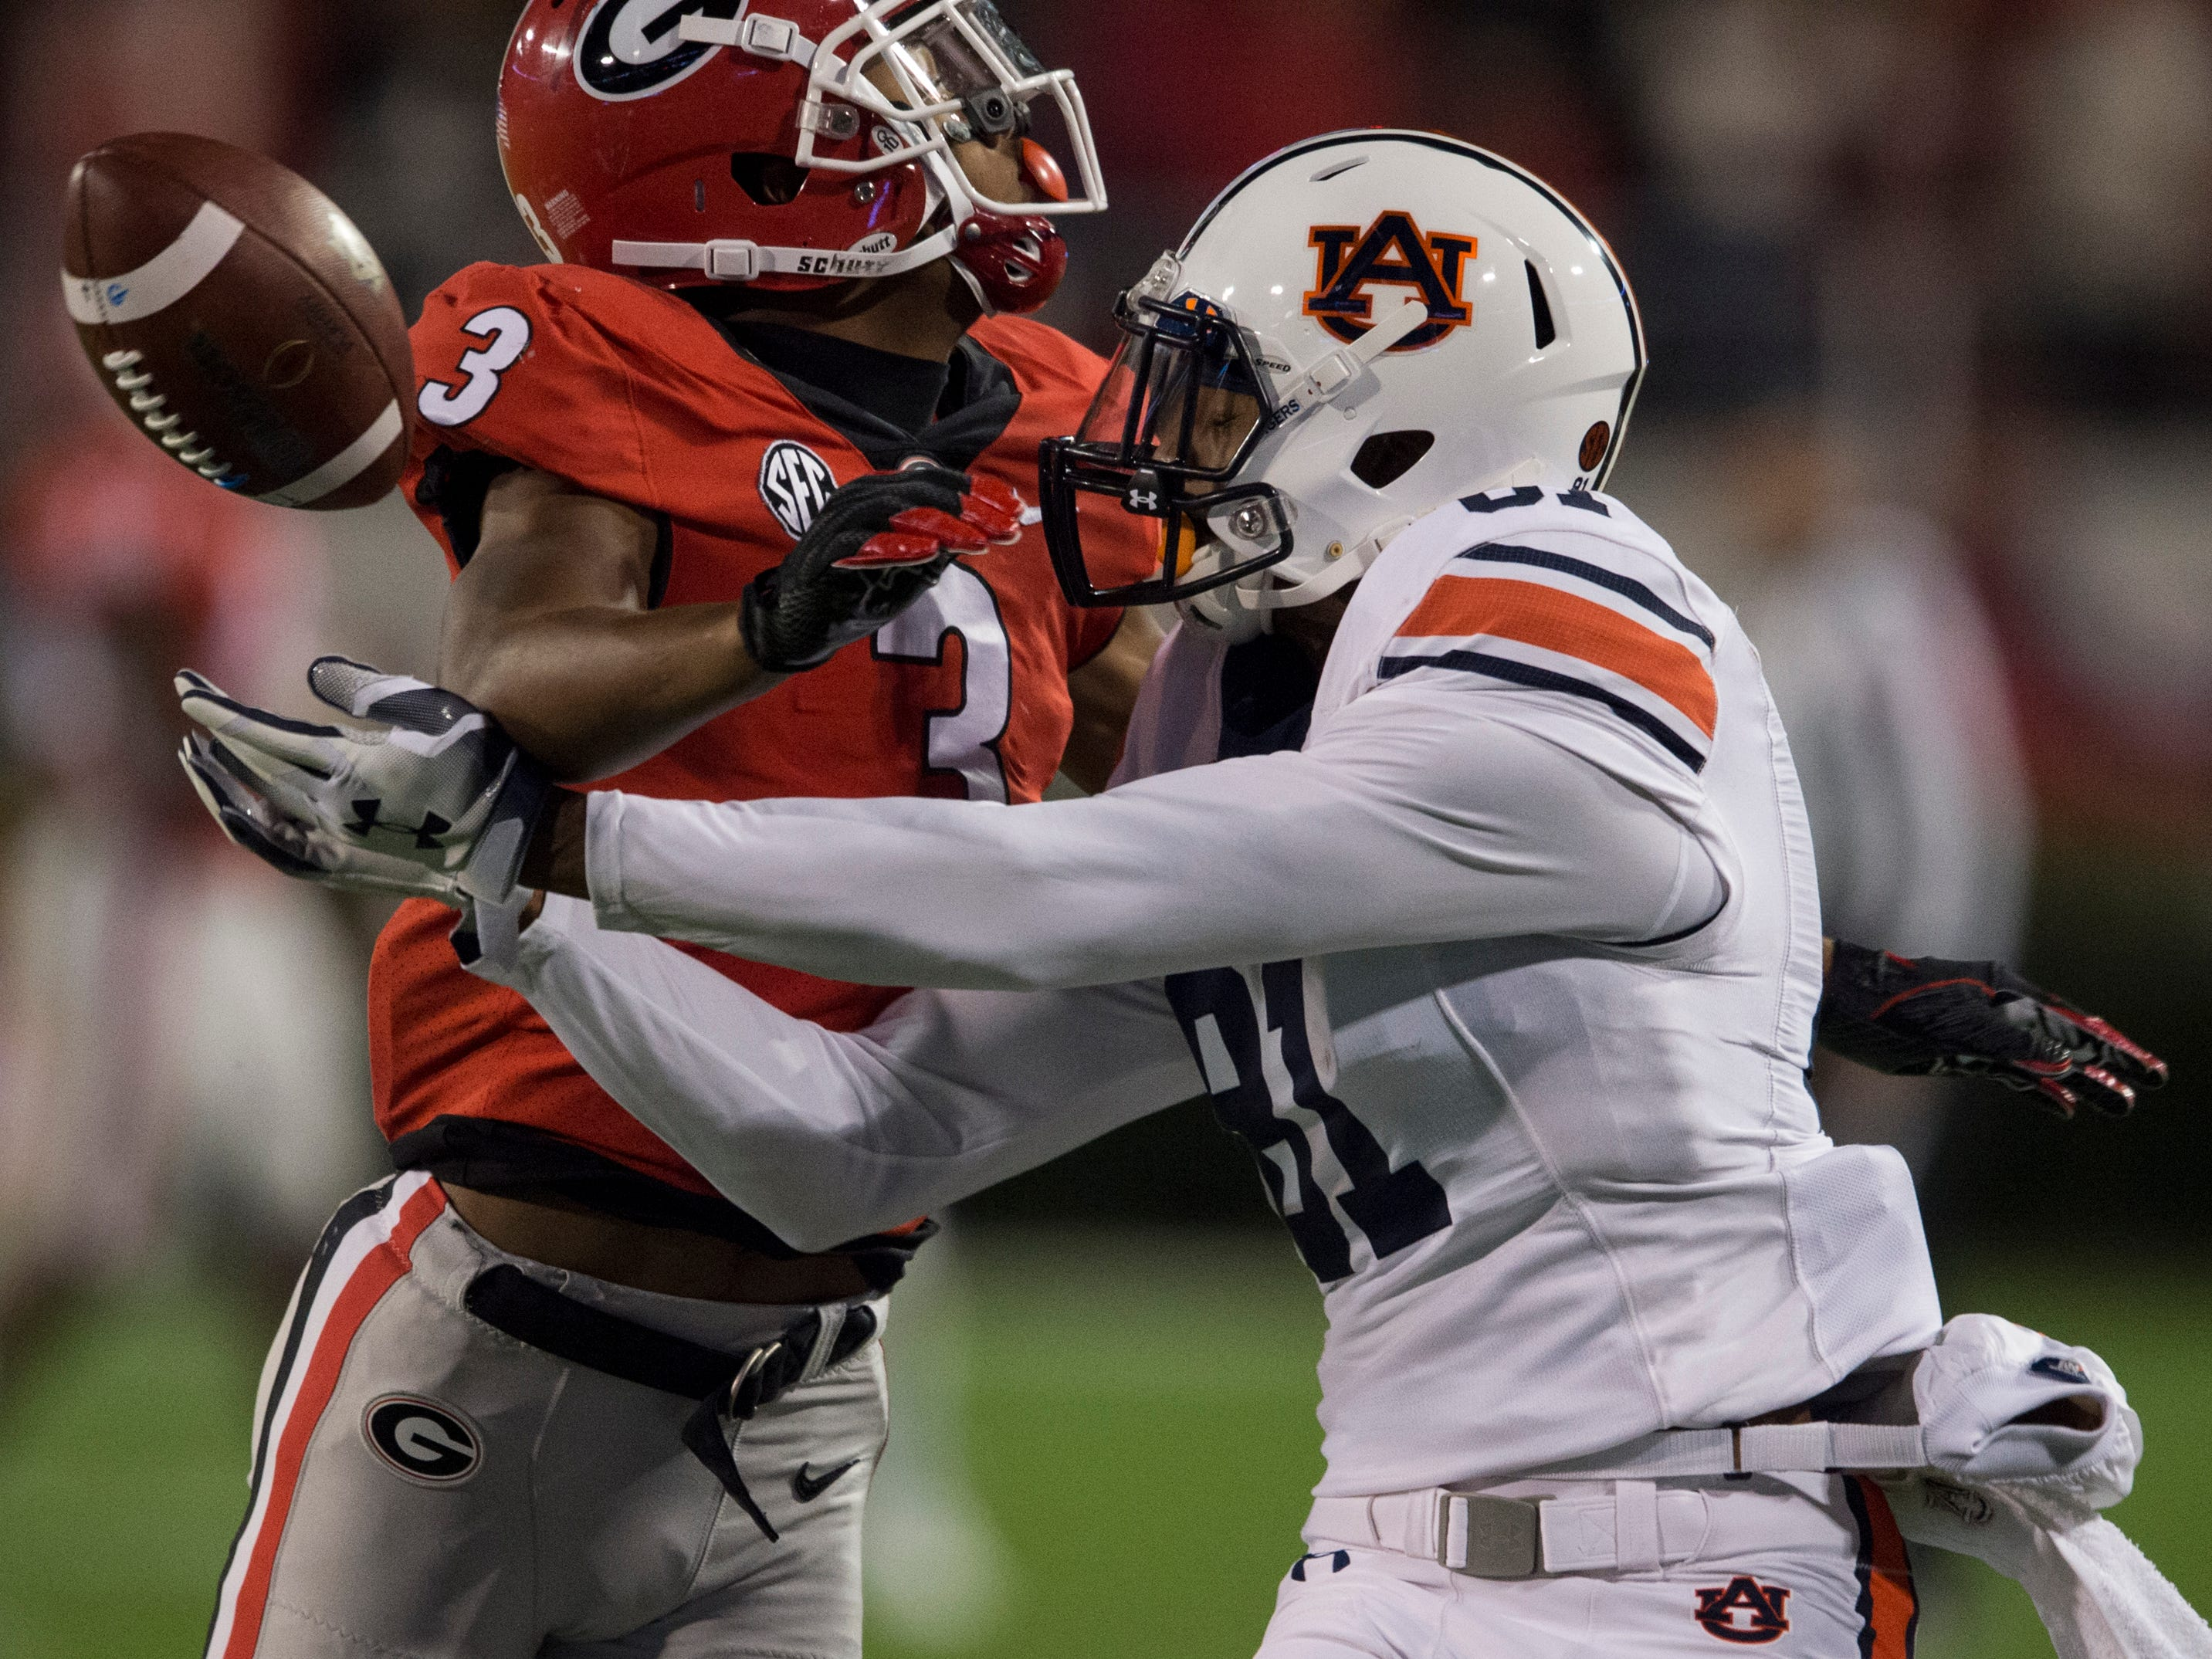 Georgia defensive back Tyson Campbell (3) is called for pass interference as he covers Auburn wide receiver Darius Slayton (81) at Sanford Stadium in Athens, Ga., on Saturday, Nov. 10, 2018. Georgia leads Auburn 20-10 at halftime.